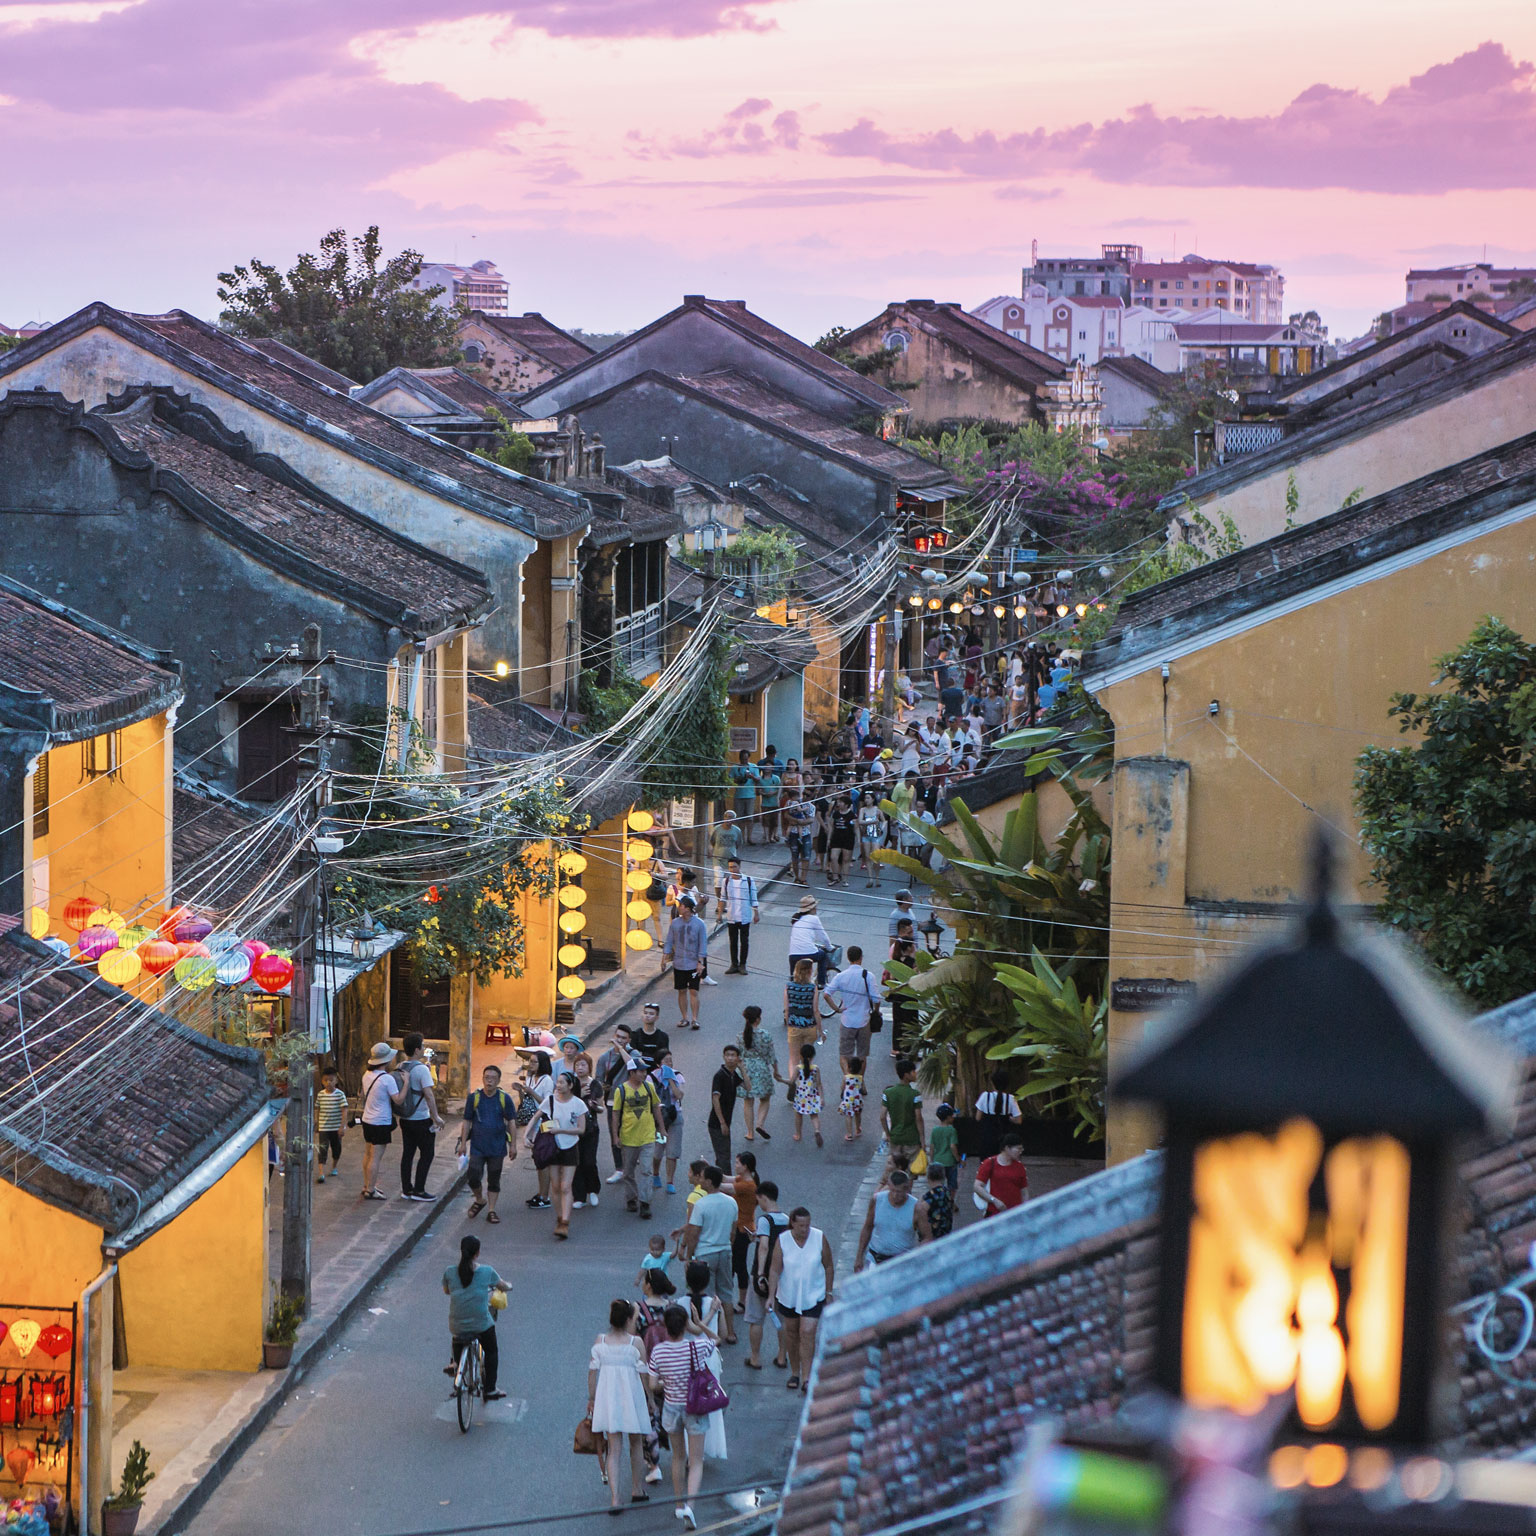 Reimagining tourism: How Vietnam can accelerate travel recovery | McKinsey